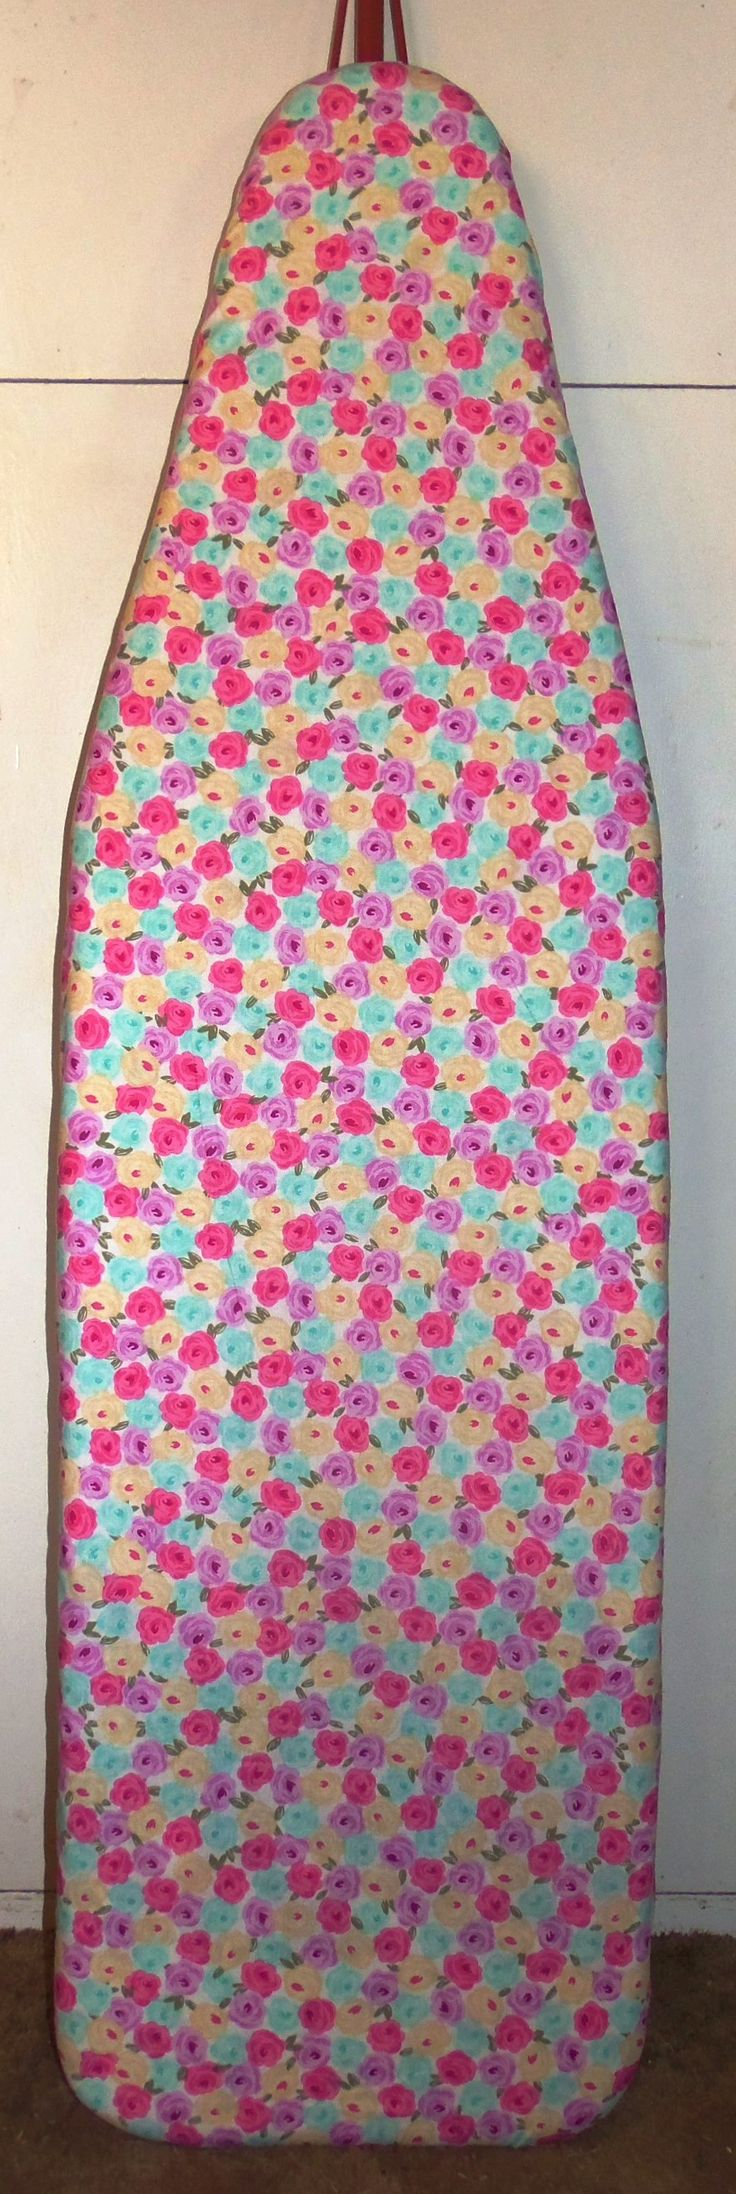 "April Rose  Farmhouse Ironing board cover Nice & Quick way to change the look of your Ironing Board. Great for displaying your antique Ironing Board. Standard board measures 54""x 15"" ~ Our covers measures - 59"" X 19.5"" Made of 100% cotton fabric, Adjustable drawstring for a good fit with 1"" Cord lock double hole, 3 little teeth in each hole to help grip your cord better, for easy on and off and quick adjusting string Machine wash cold - tumble dry low. Handmade in the USA"